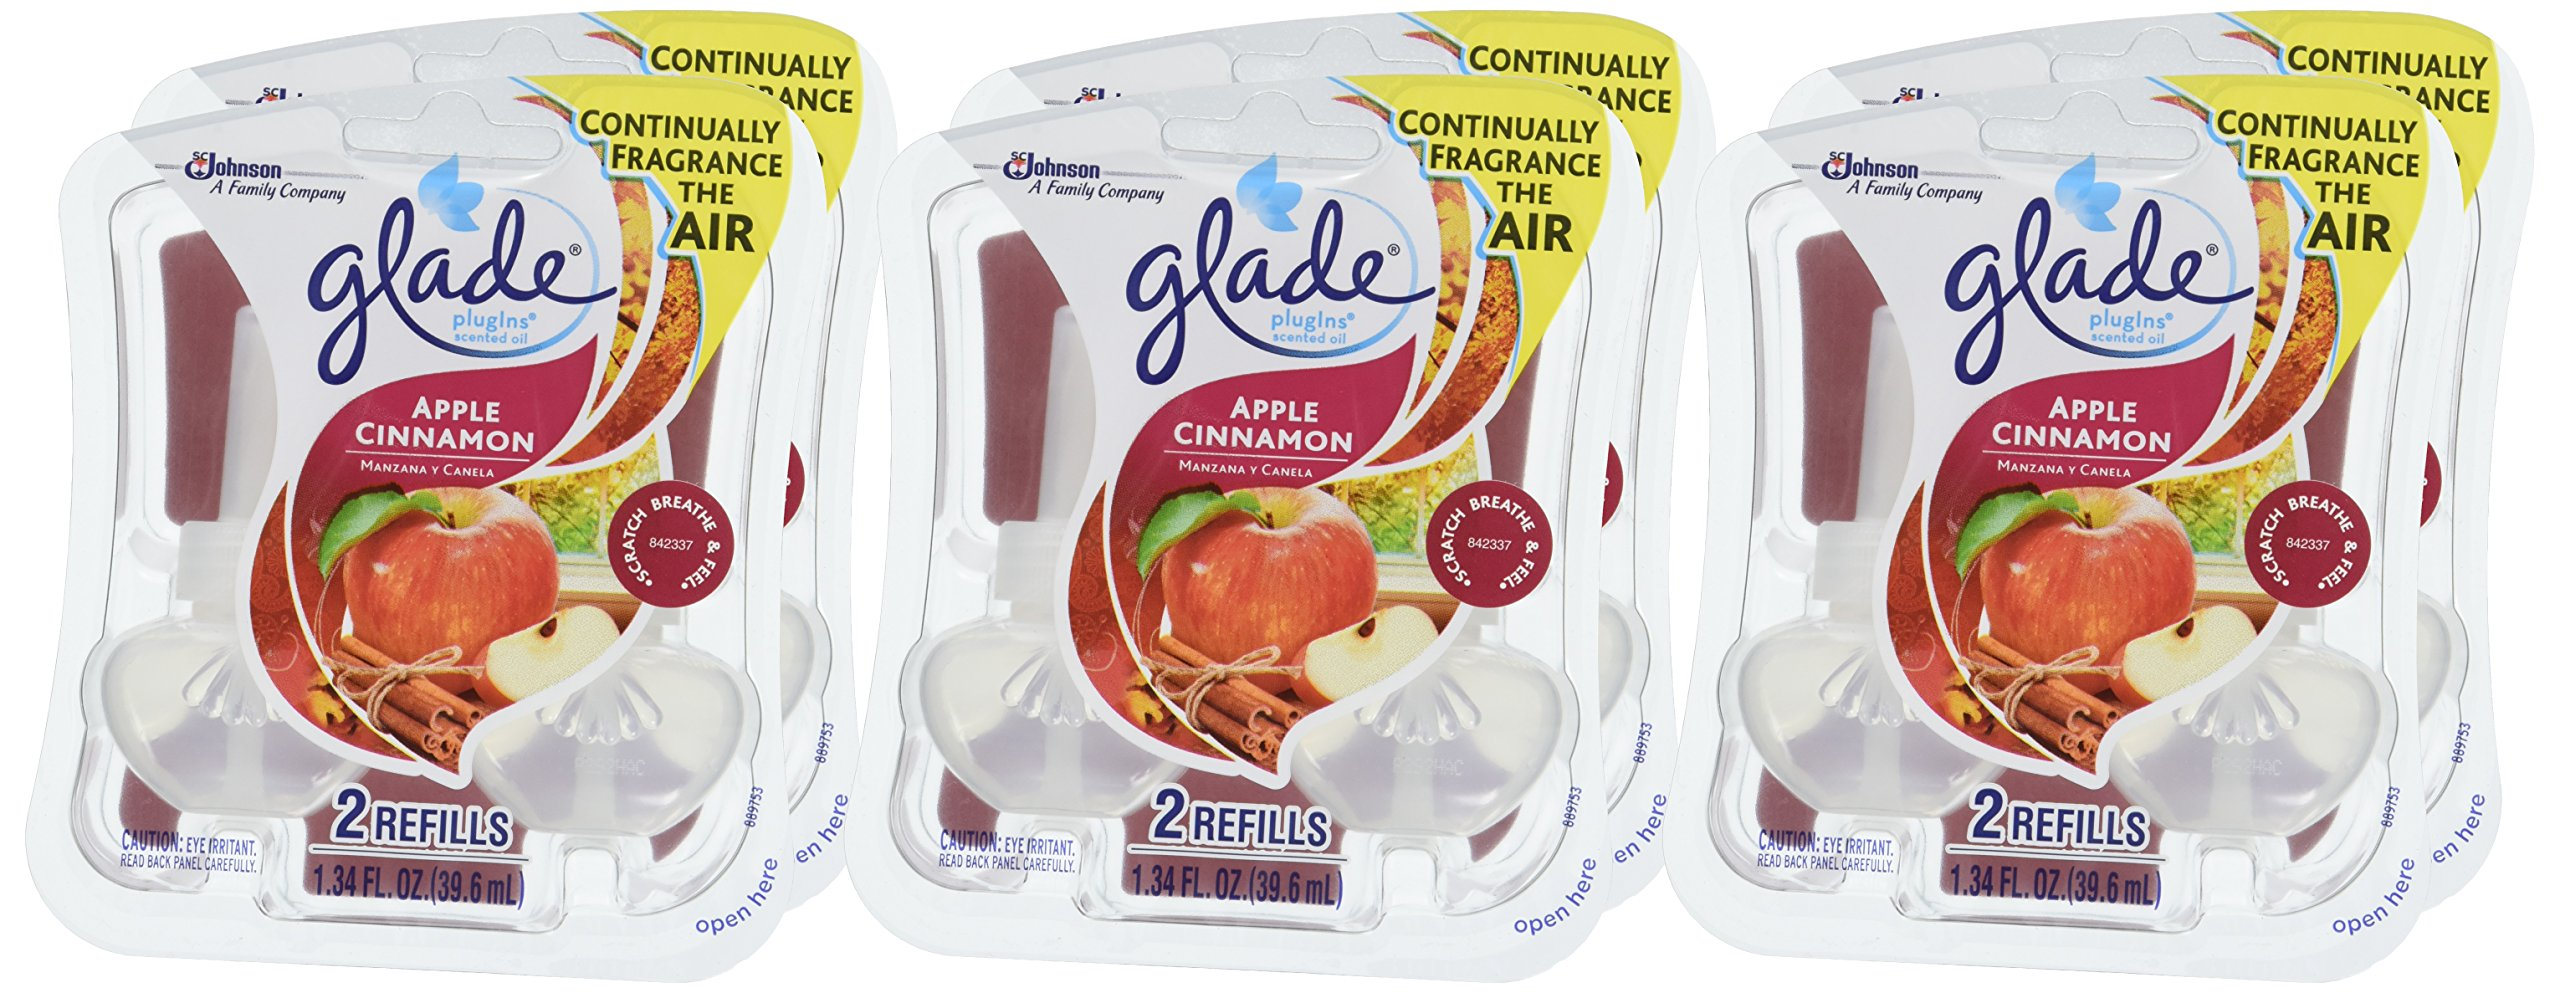 Glade PlugIns Scented Oil Air Freshener Refill, Apple Cinnamon, 2 refills, 1.34 fl oz by Glade (Image #2)